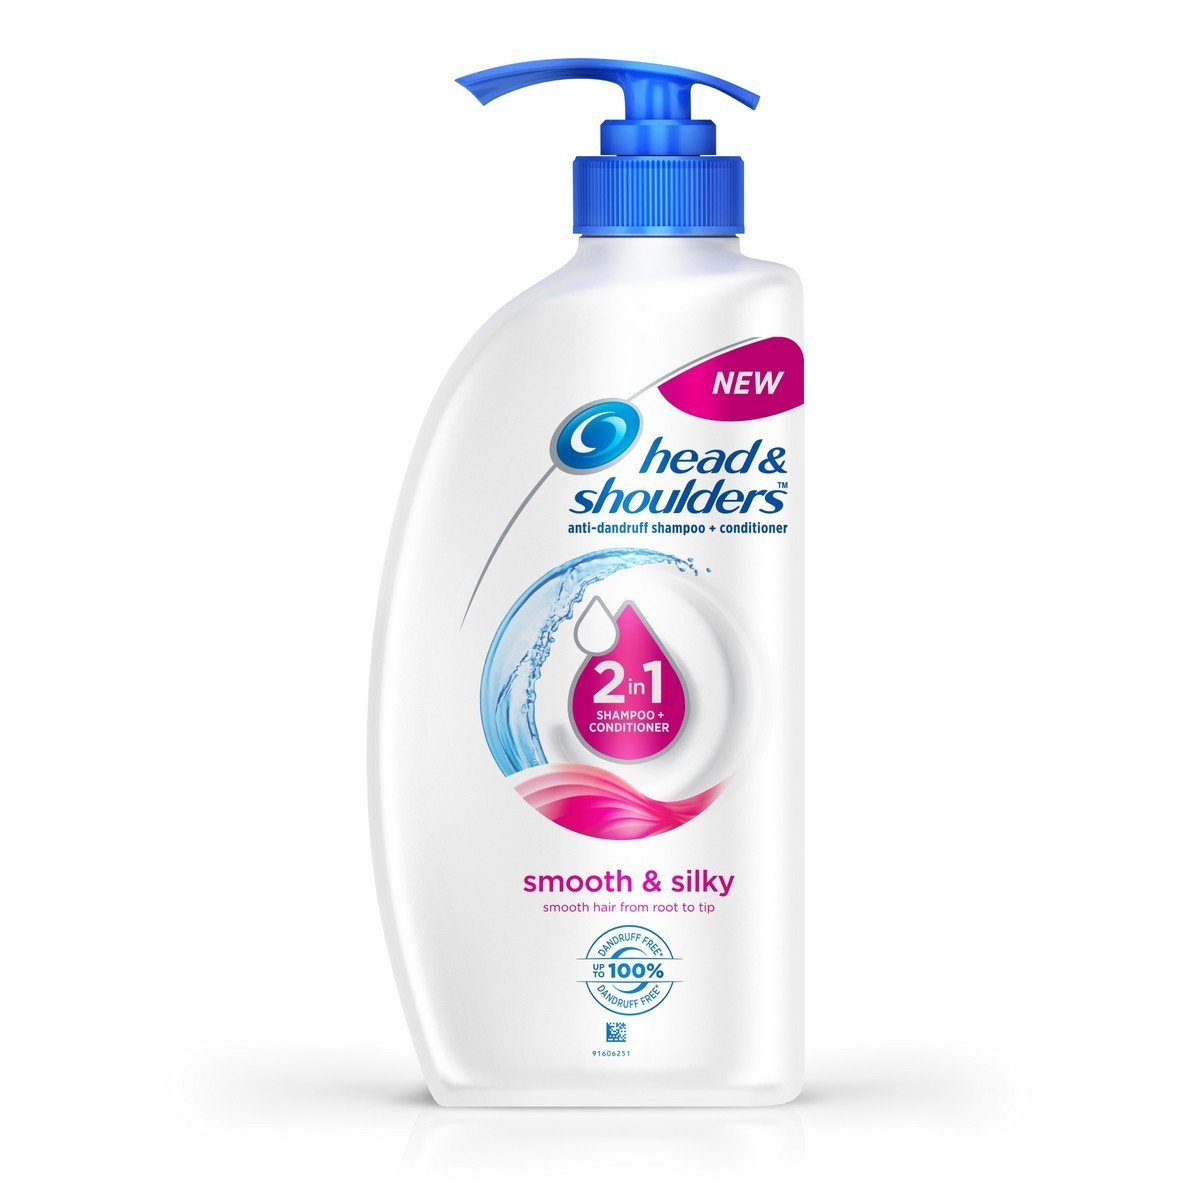 Head & Shoulders Smooth and Silky 2-in-1 Shampoo and Conditioner, 750ml